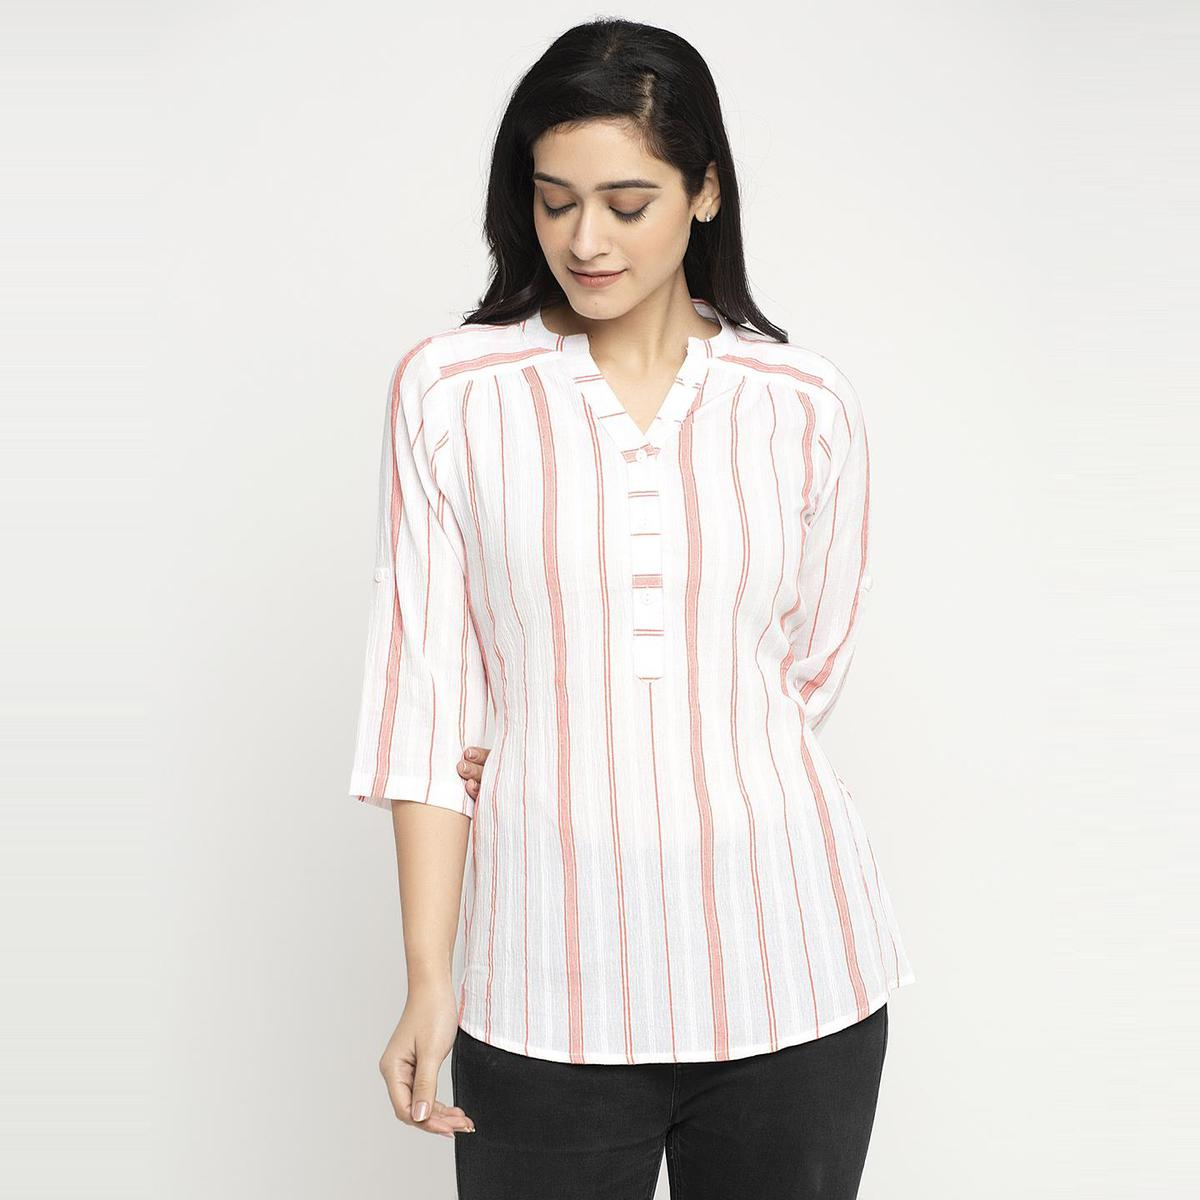 Ayaany - Women White Colored Casual Printedd Cotton Top